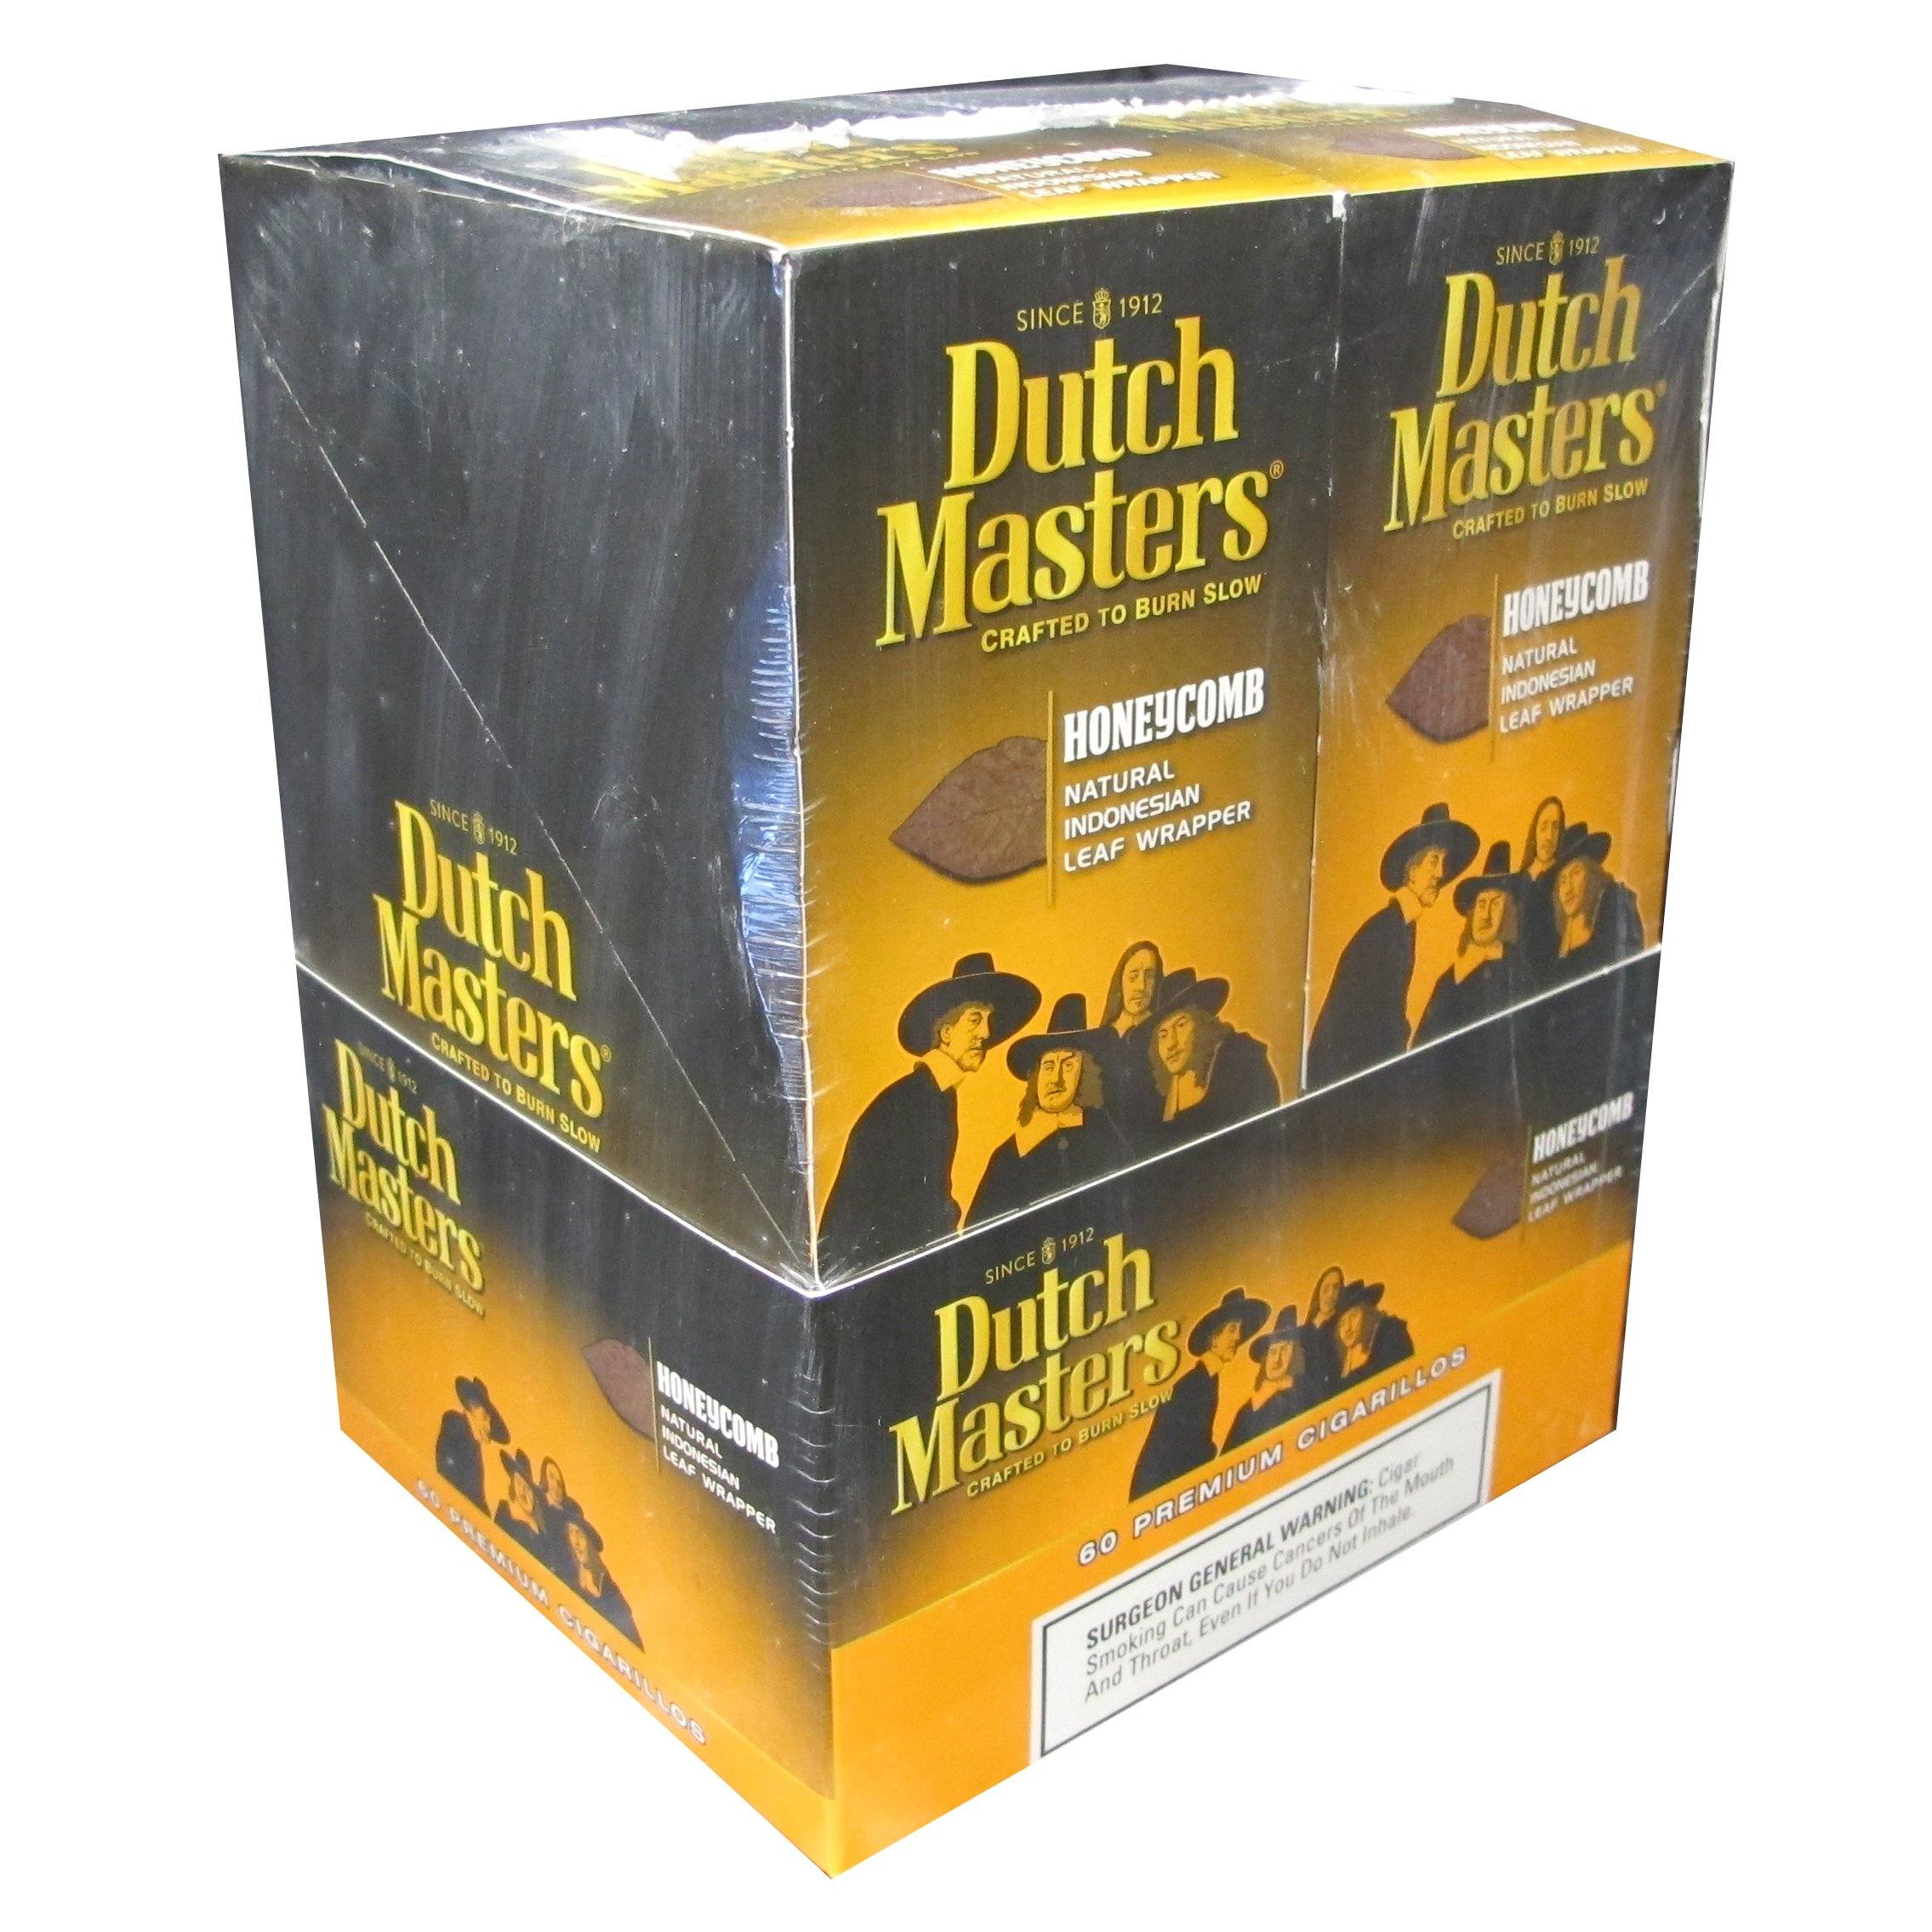 Dutch Masters Honeycomb Cigarillos